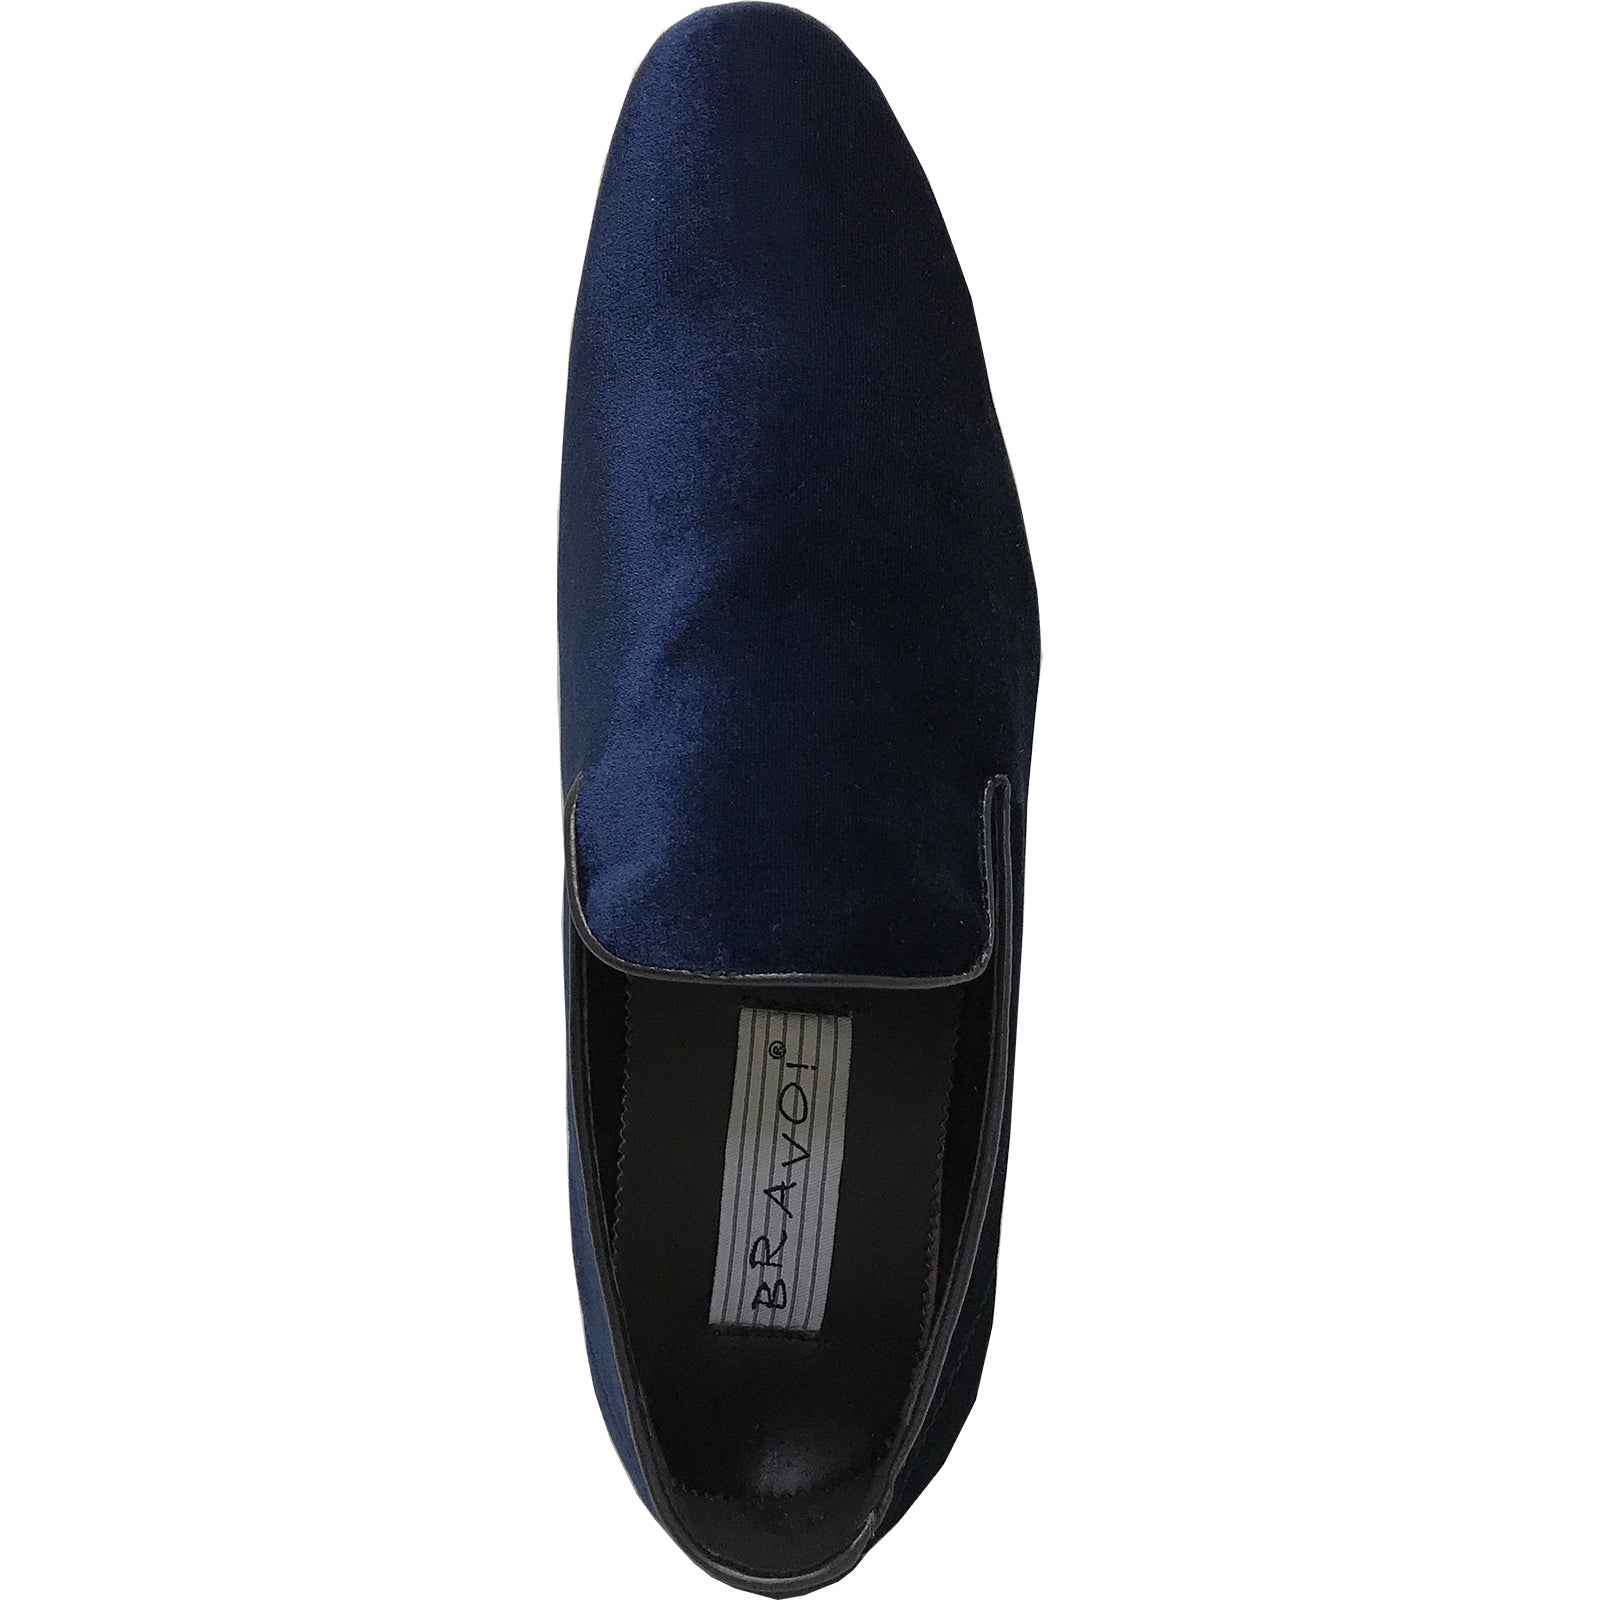 cf9b88175b0 Shop BRAVO Men Dress Shoe KLEIN-7 Loafer Shoe Blue Velvet with Leather  Lining - Free Shipping Today - Overstock - 18076652